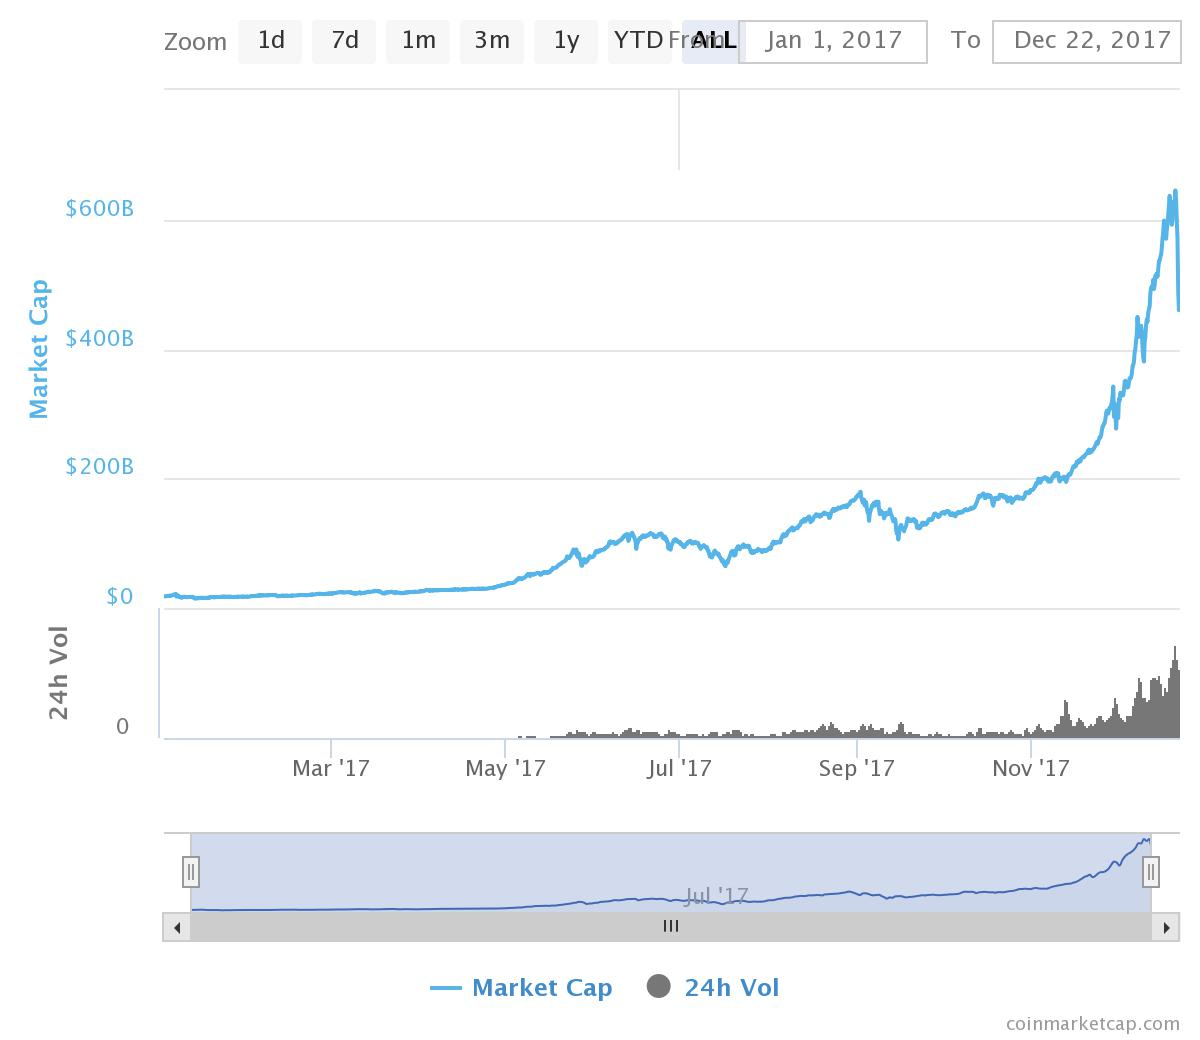 The entire 2017 market cap growth of the entire crypto sector.